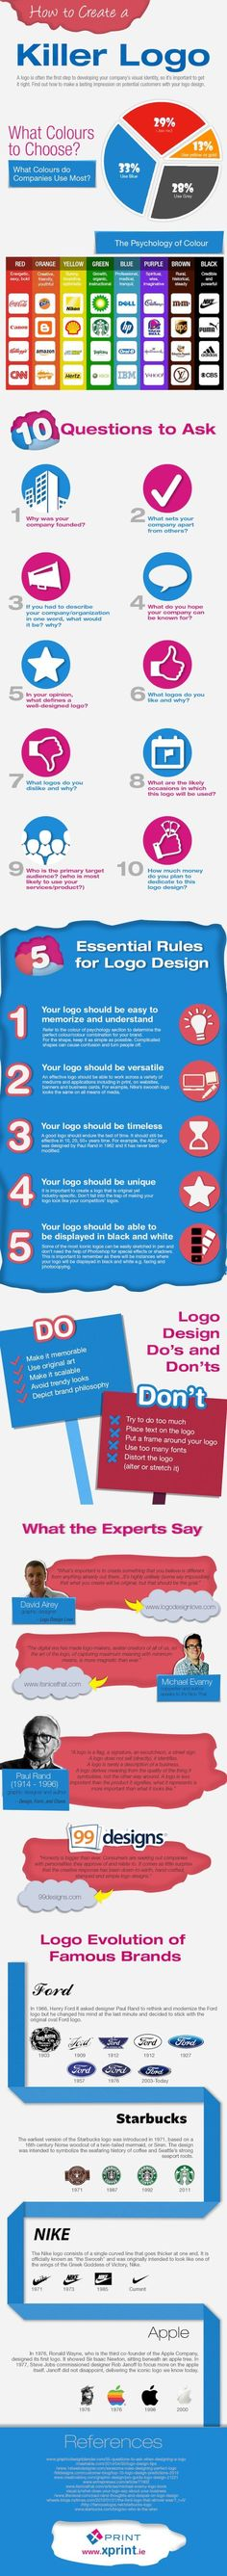 How To Create a Killer Logo   Infographic - UltraLinx